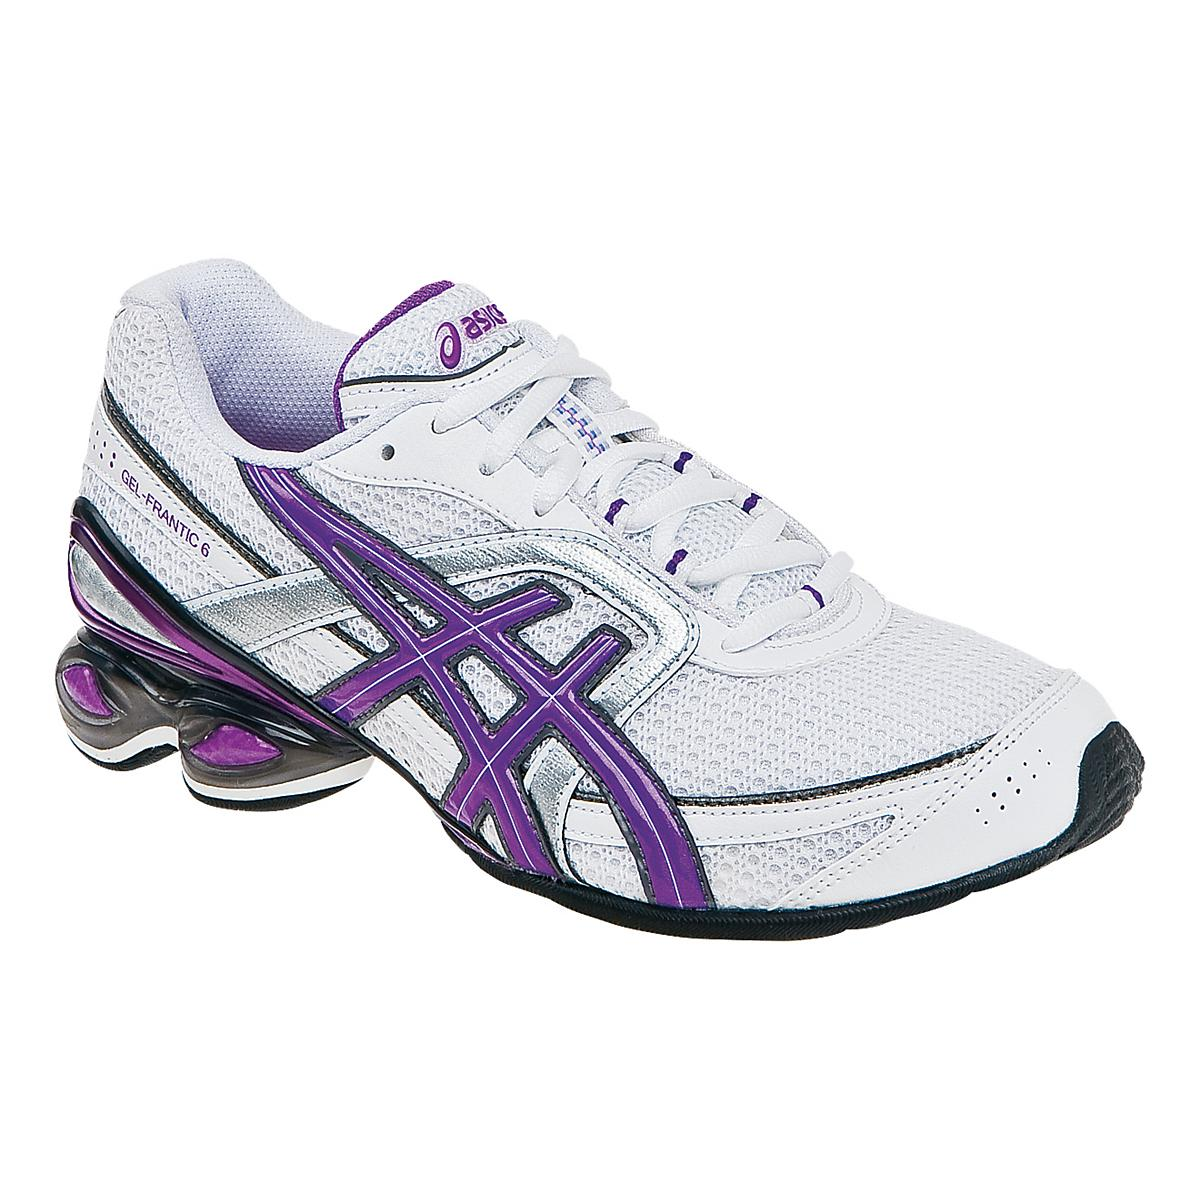 991c114bc5ee Womens ASICS GEL-Frantic 6 Running Shoe at Road Runner Sports